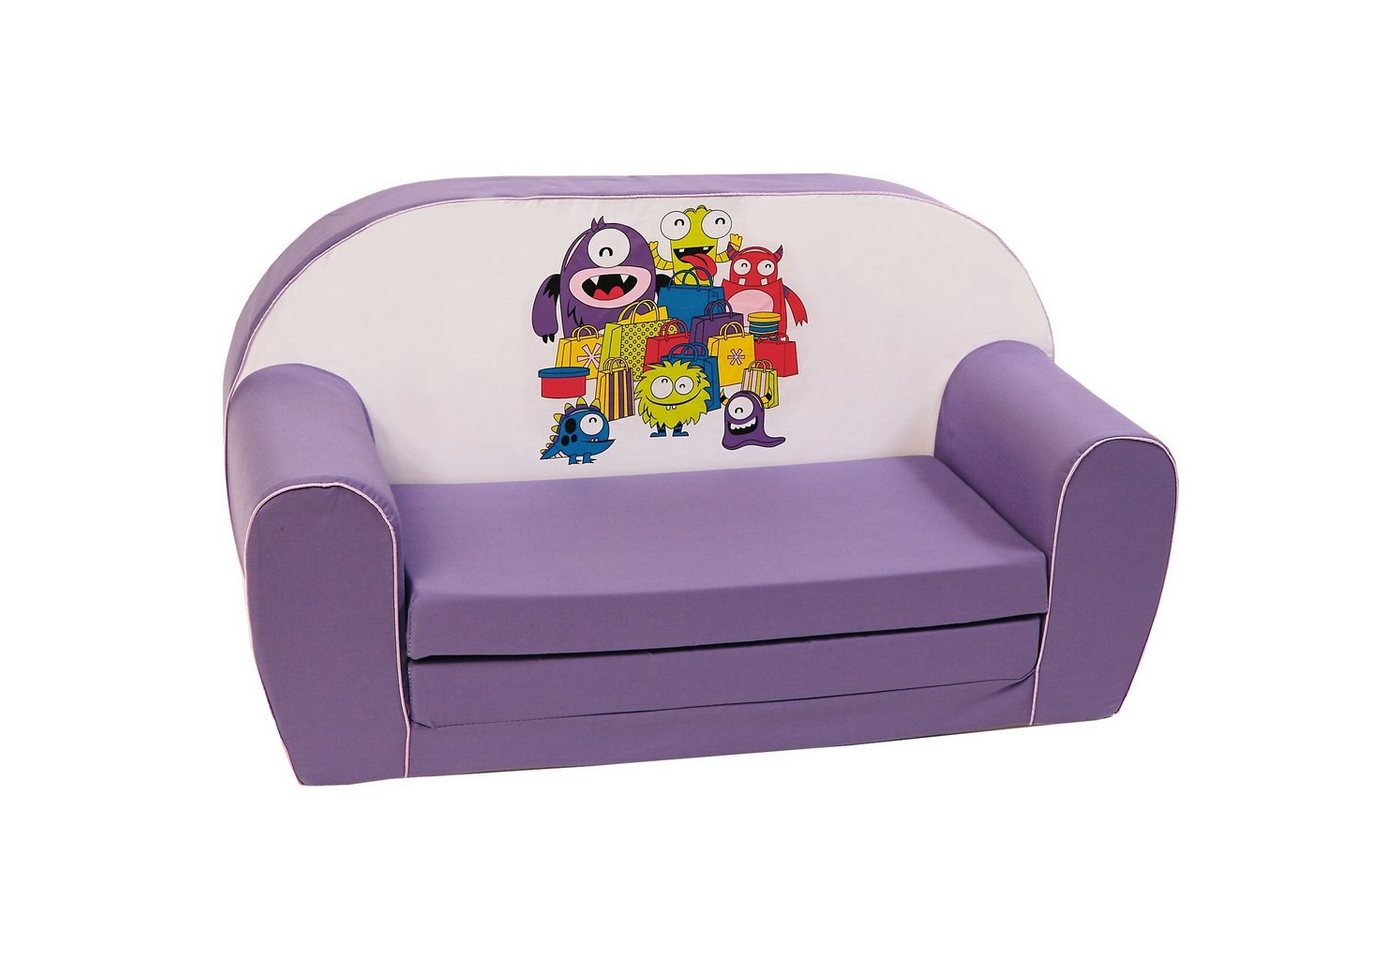 Knorrbaby Mini-Schlafsofa Monster, lila | Kinderzimmer > Kindersessel & Kindersofas | Lila | Knorrbaby